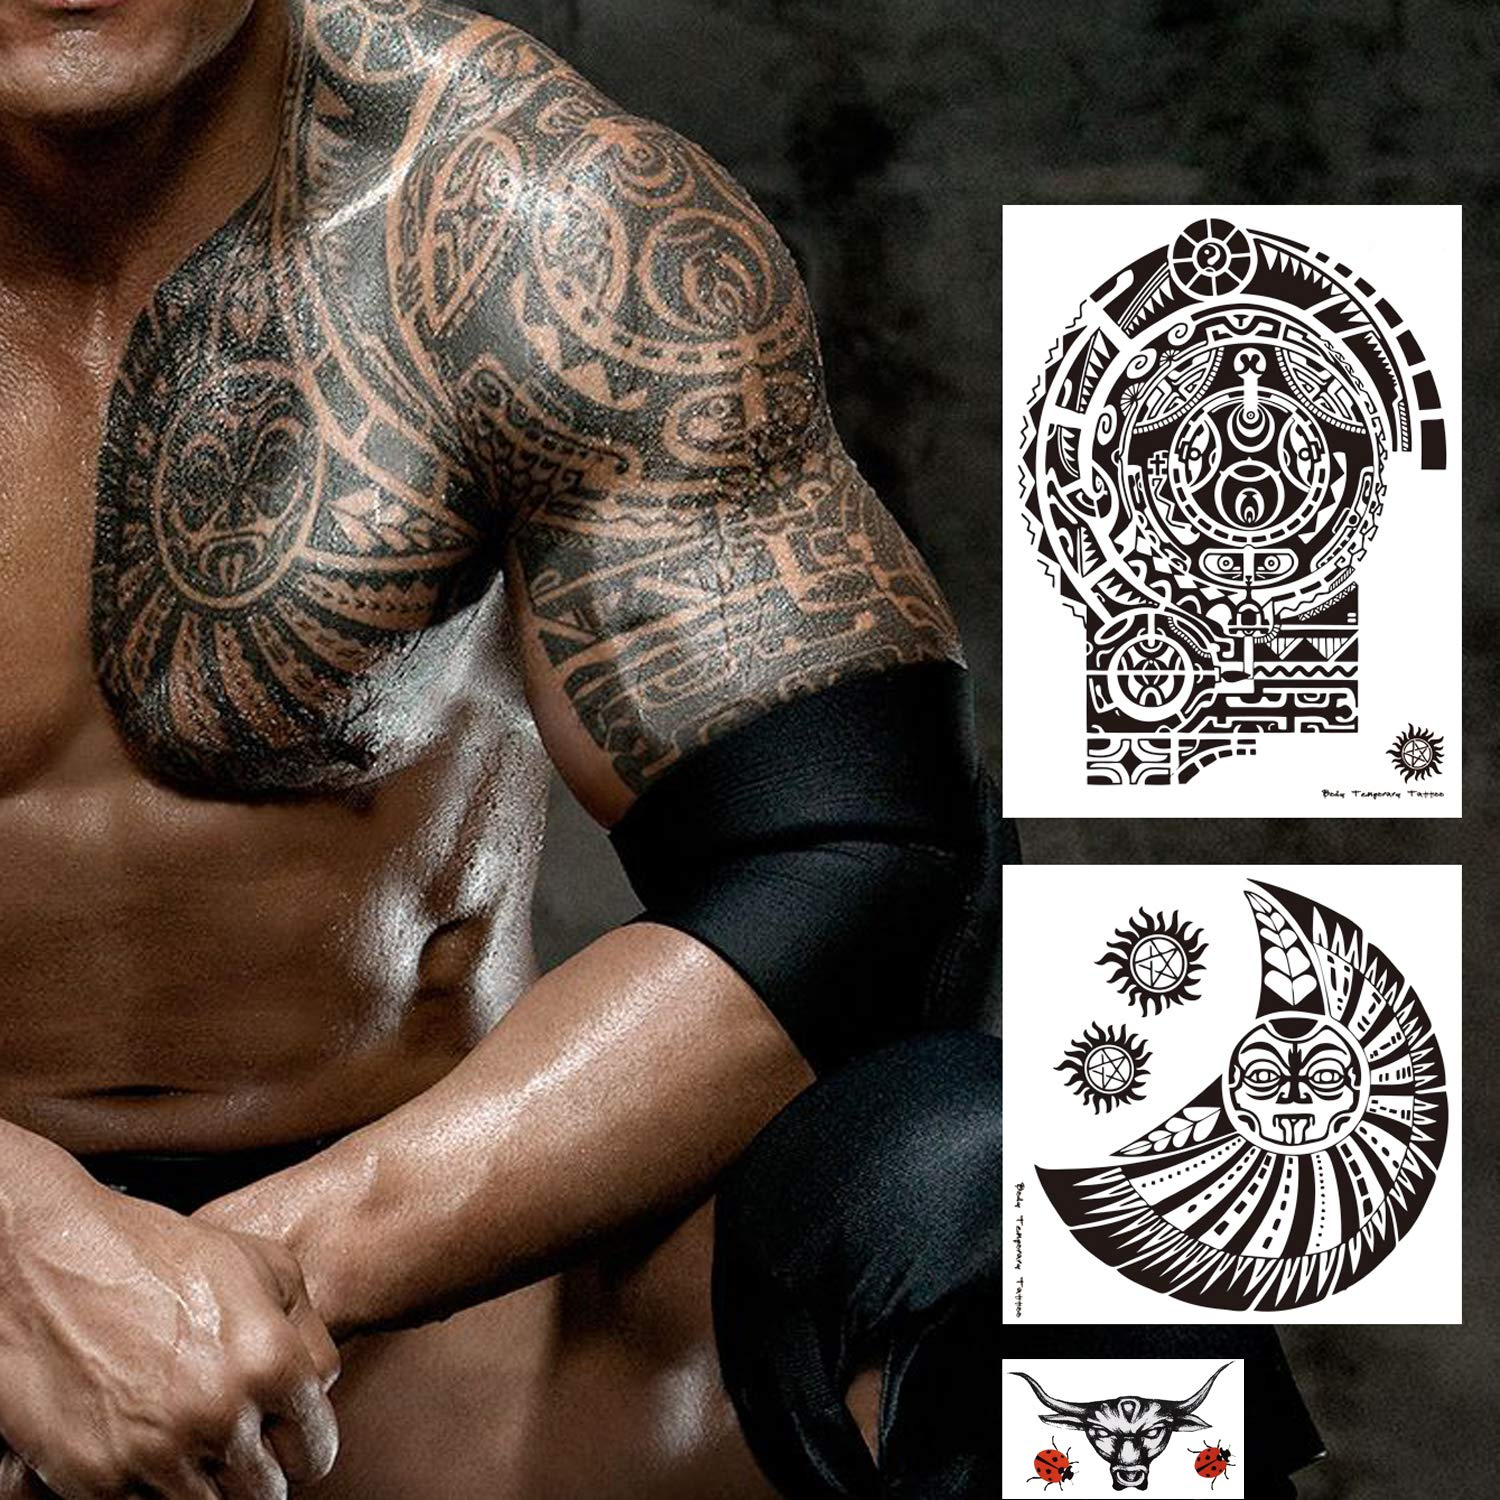 3fde2c1ea79c0 Amazon.com: Kotbs 3 Sheets Temporary Tattoos for Men Adults Guys - The Rock  Star Totem Tattoo Temporary Extra Large Tattoo Stickers Fake Tattoo: Beauty